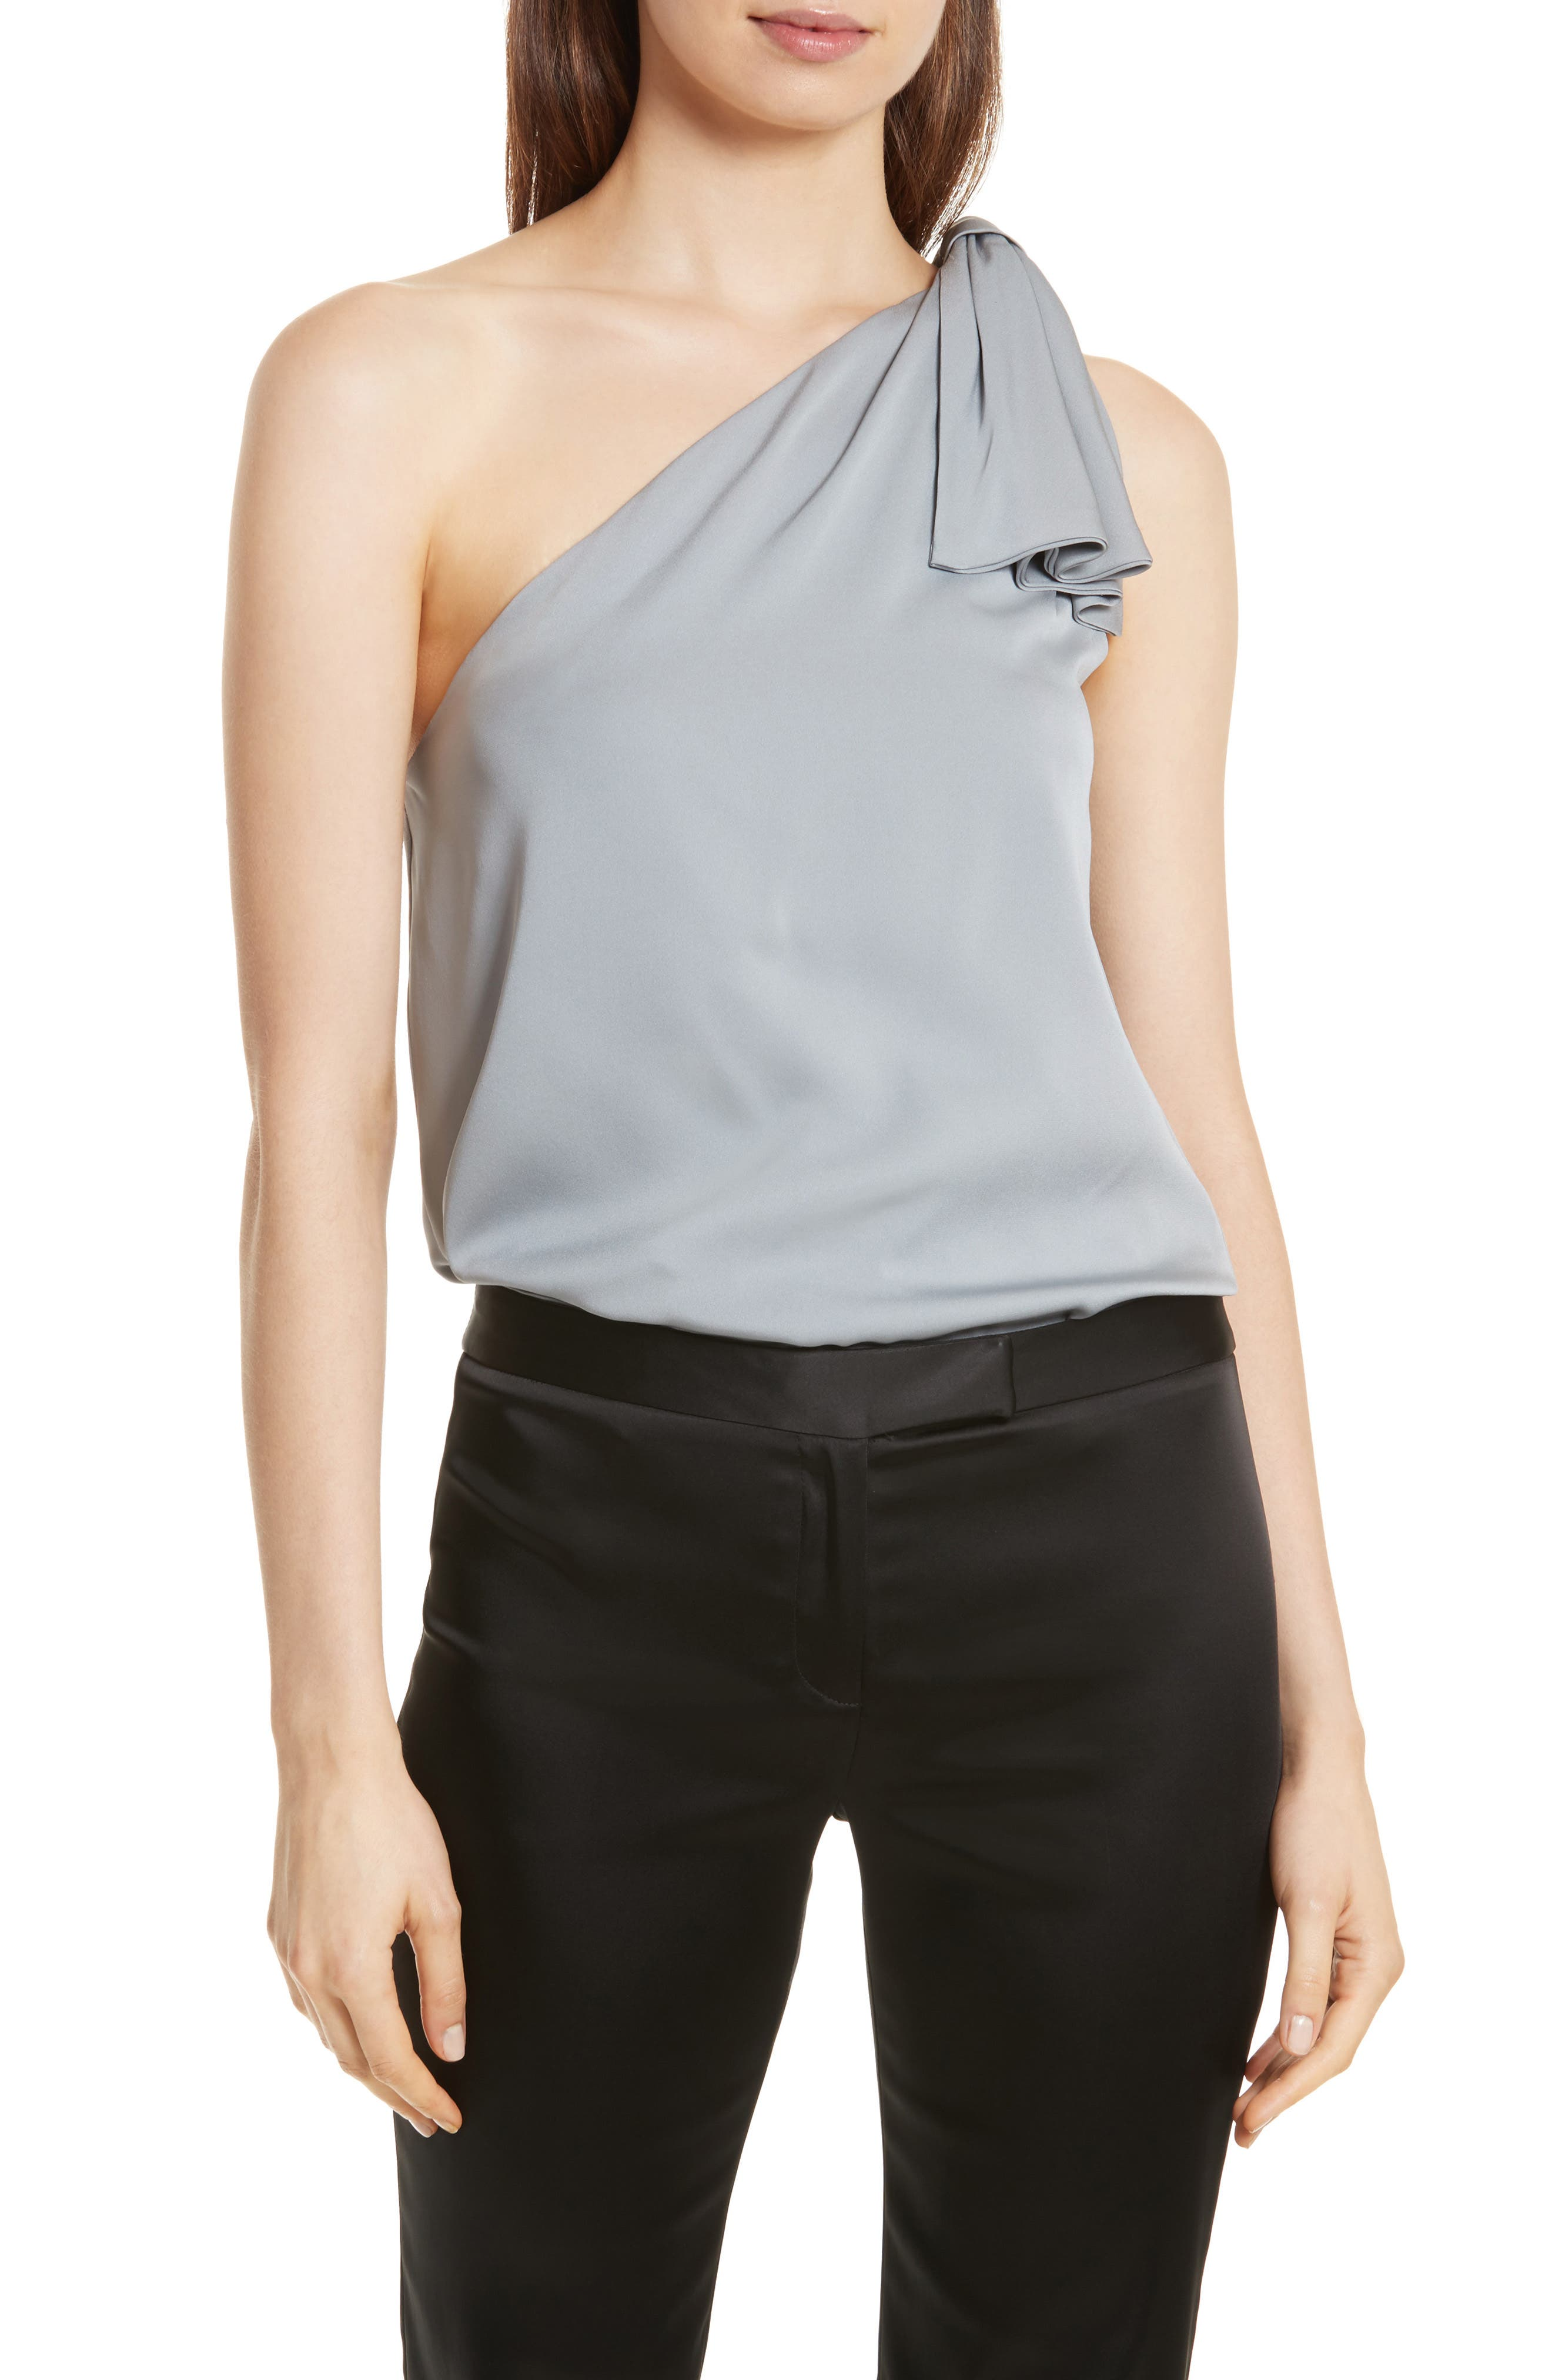 Cindy One-Shoulder Stretch Silk Top,                             Main thumbnail 1, color,                             041